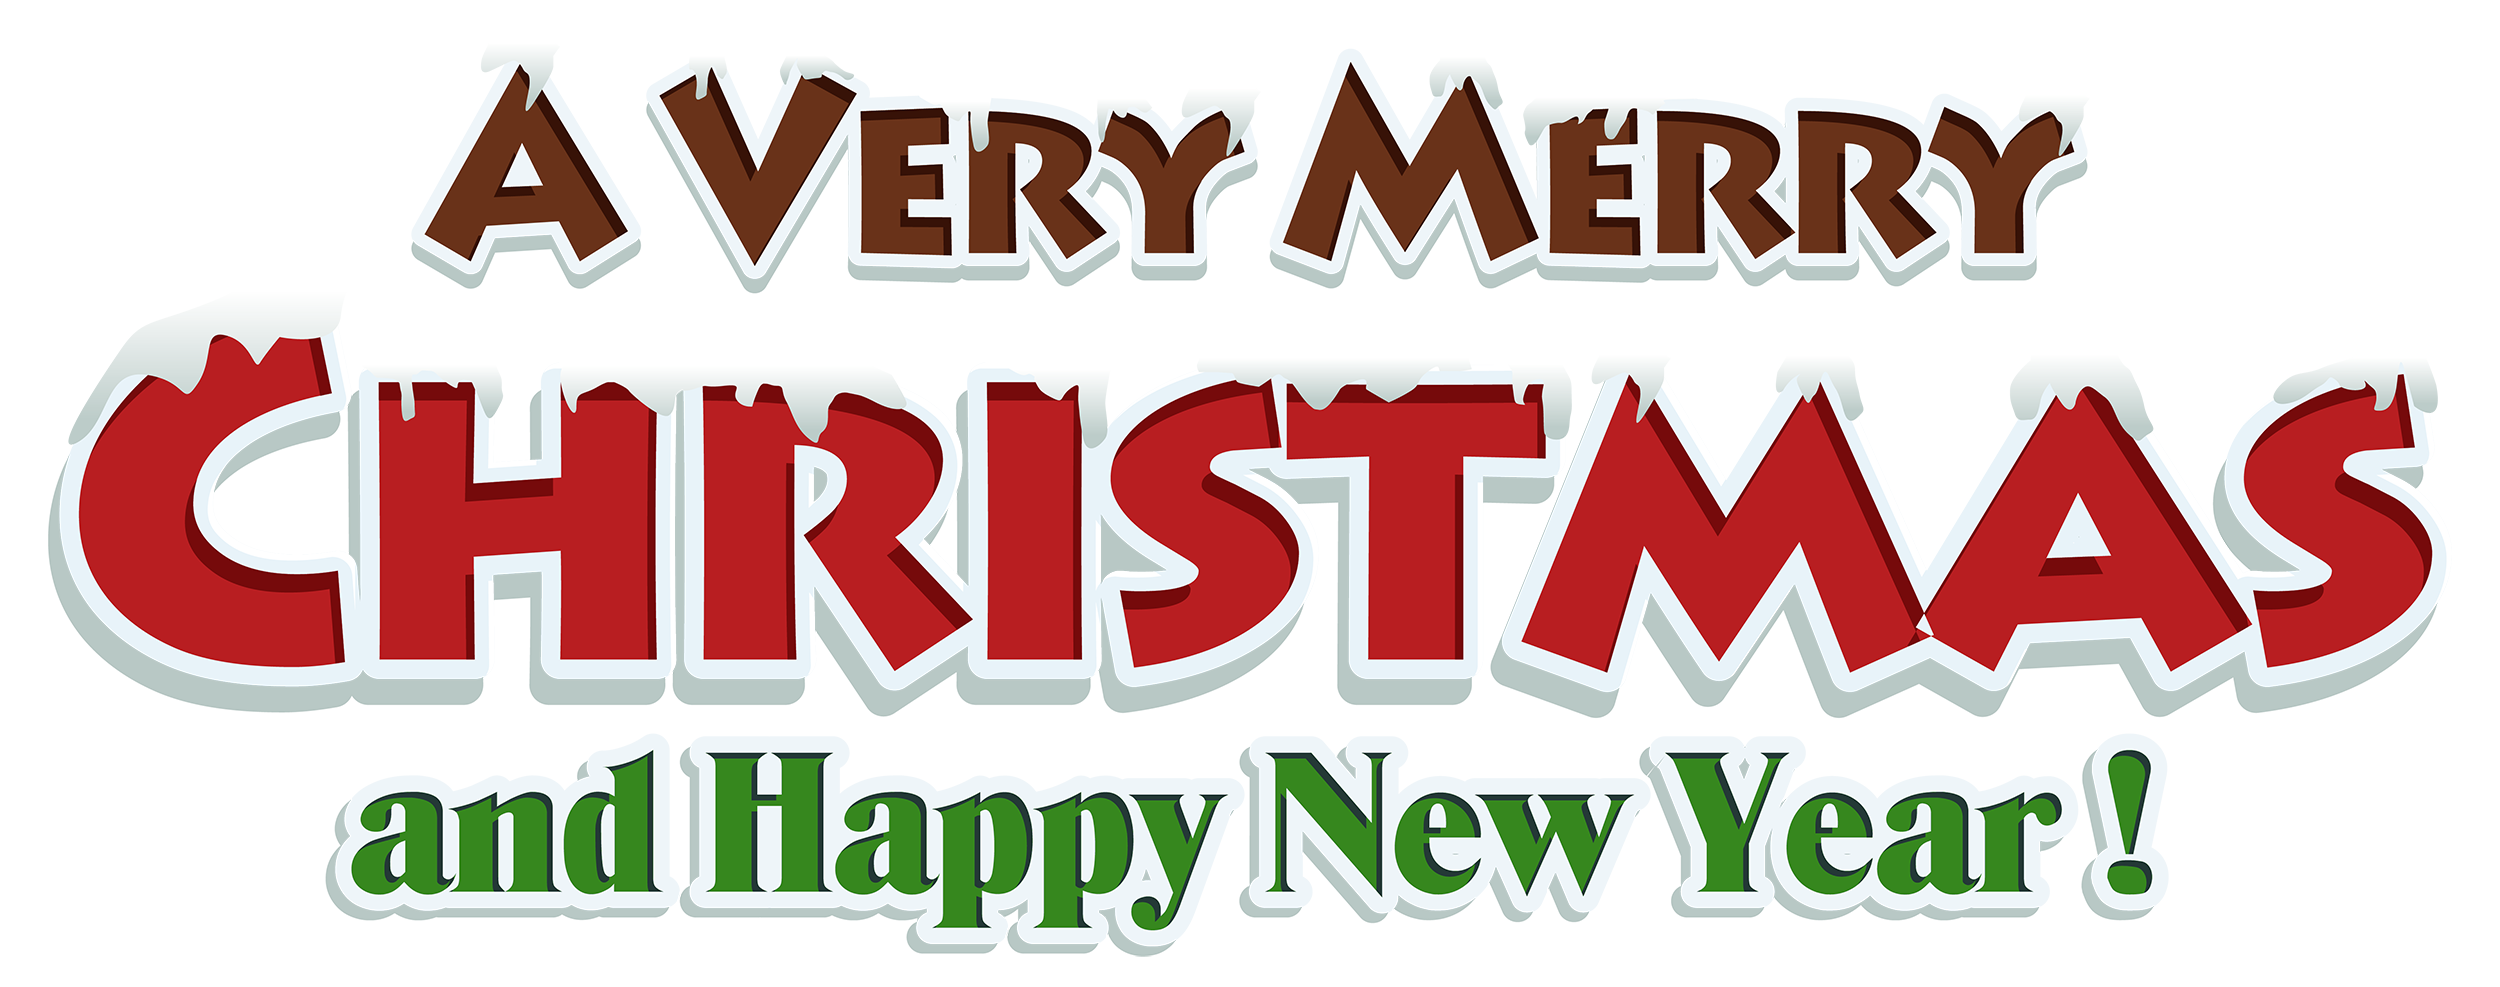 Red text decor clipart. Merry christmas png images